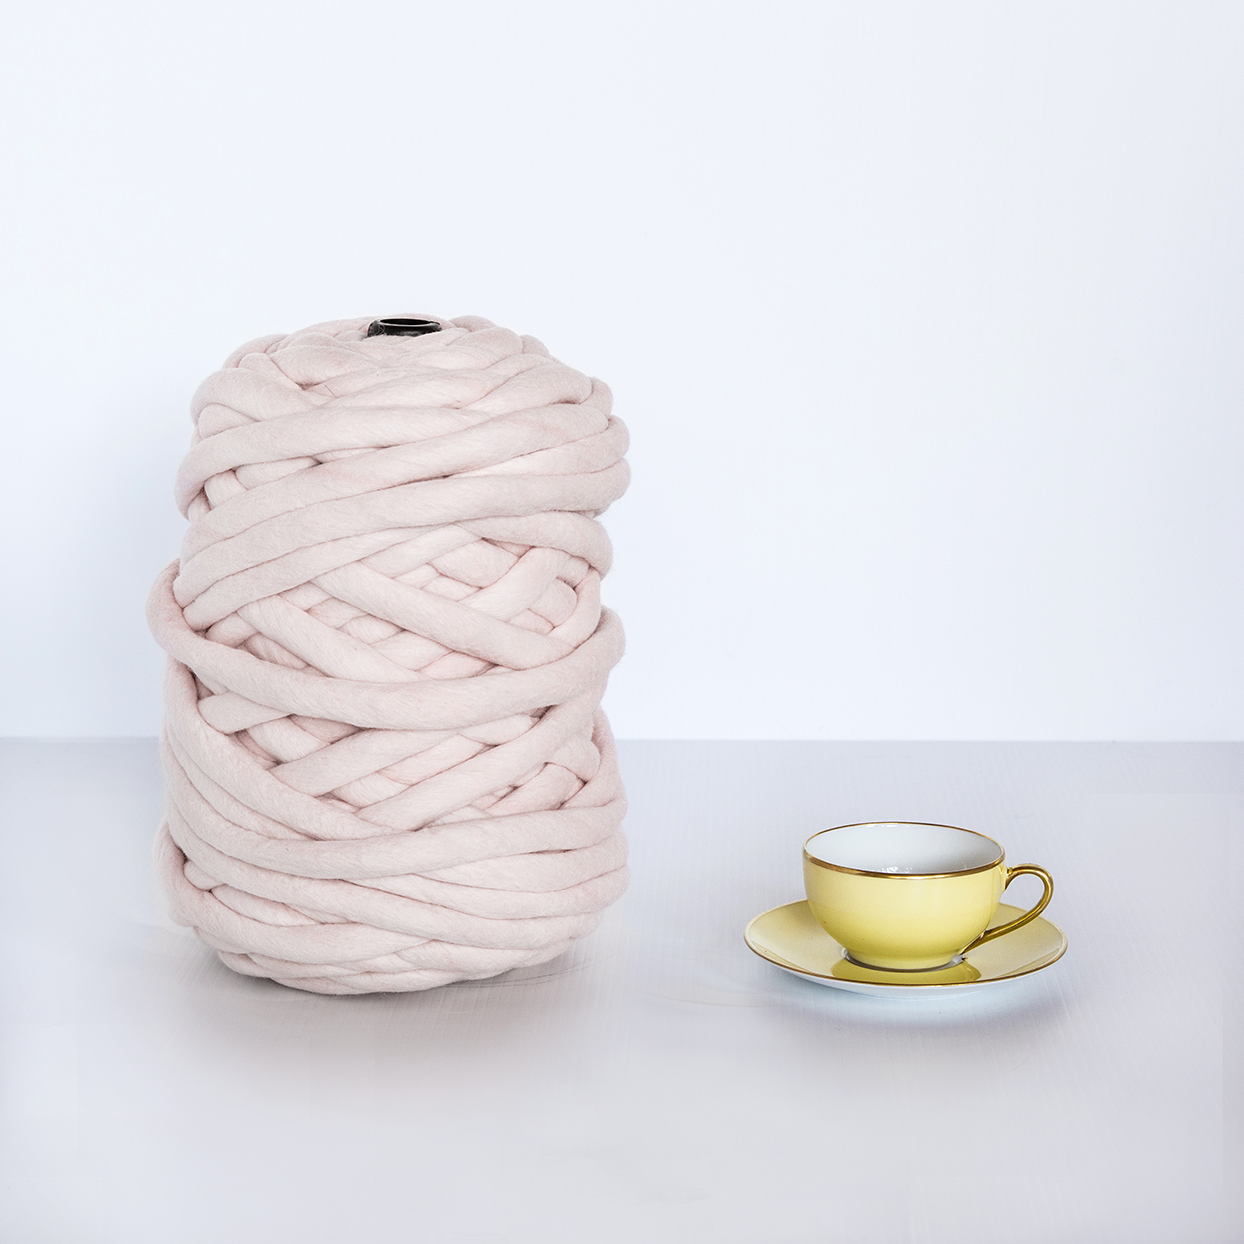 K1S1 Extreme Yarn, 1.5kg Bump, Ballet Pink. Black Friday Sale Price $153.00 exc gst (Australian residents add gst)